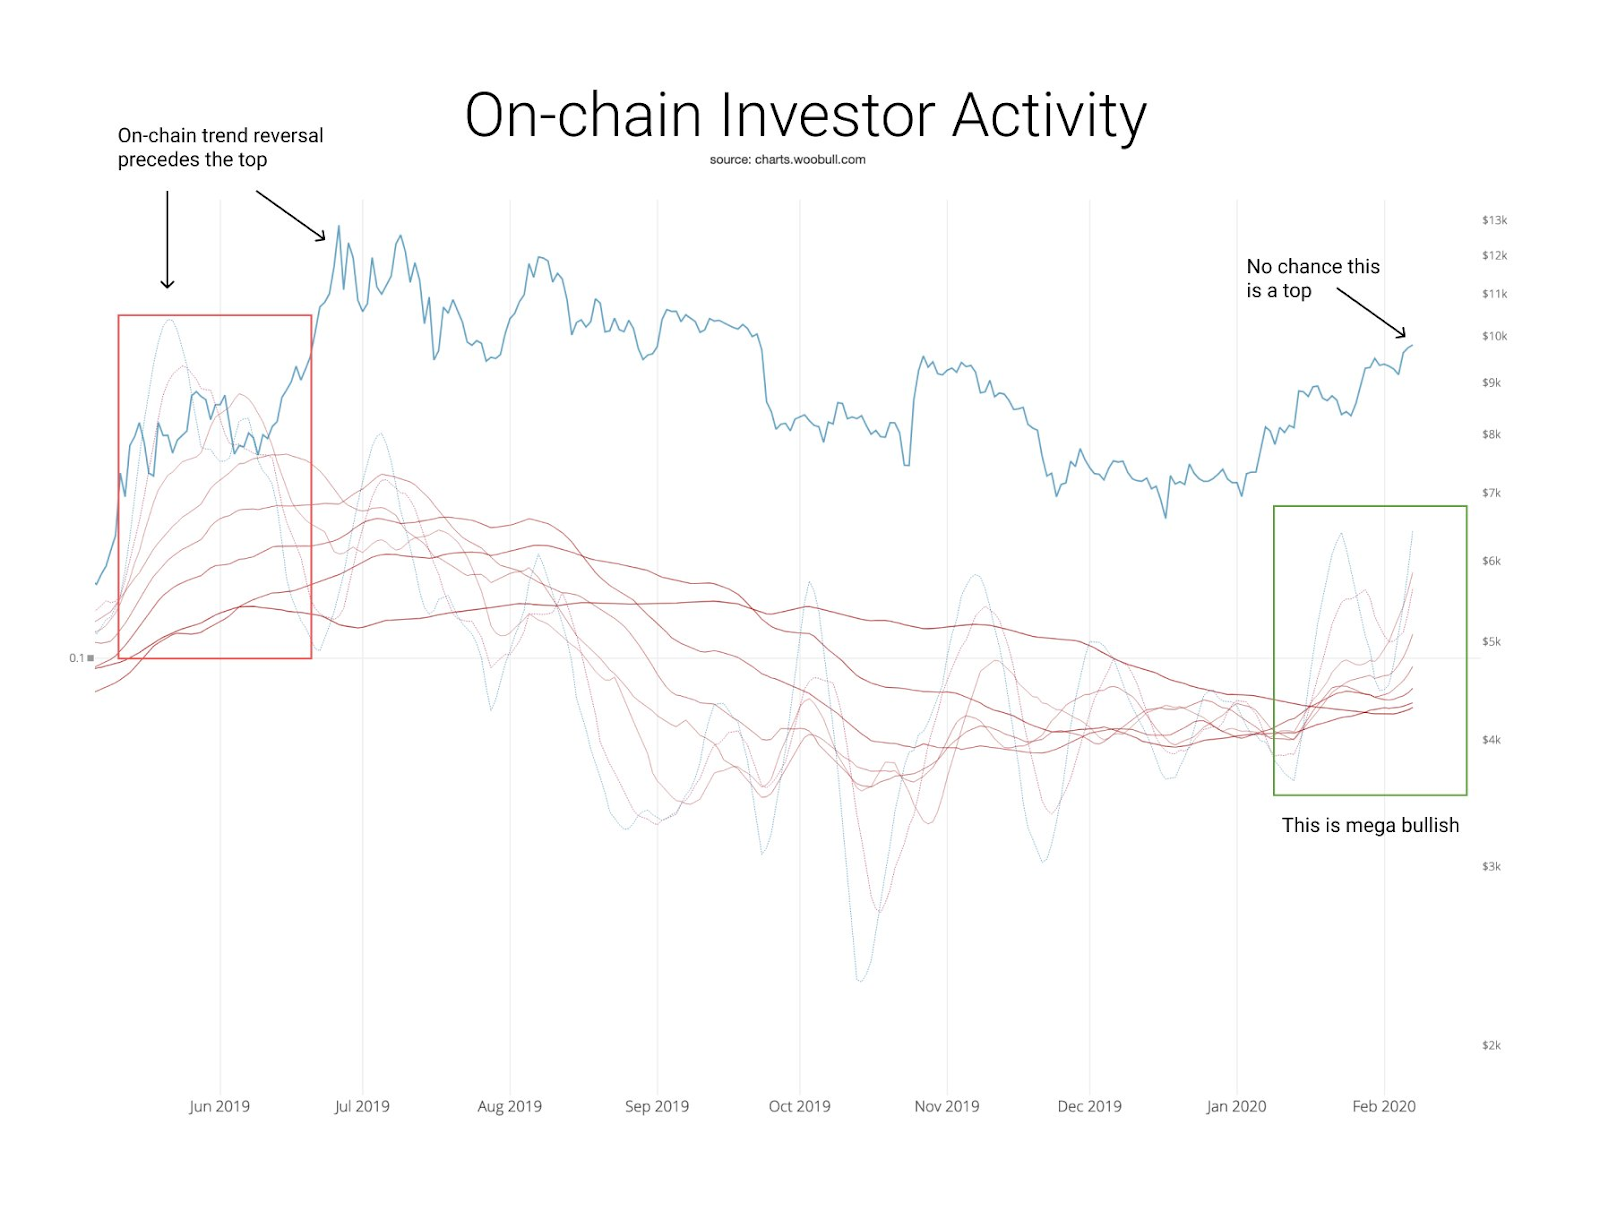 Caption: Bitcoin on-chain investor activity. Source: Willy Woo Twitter